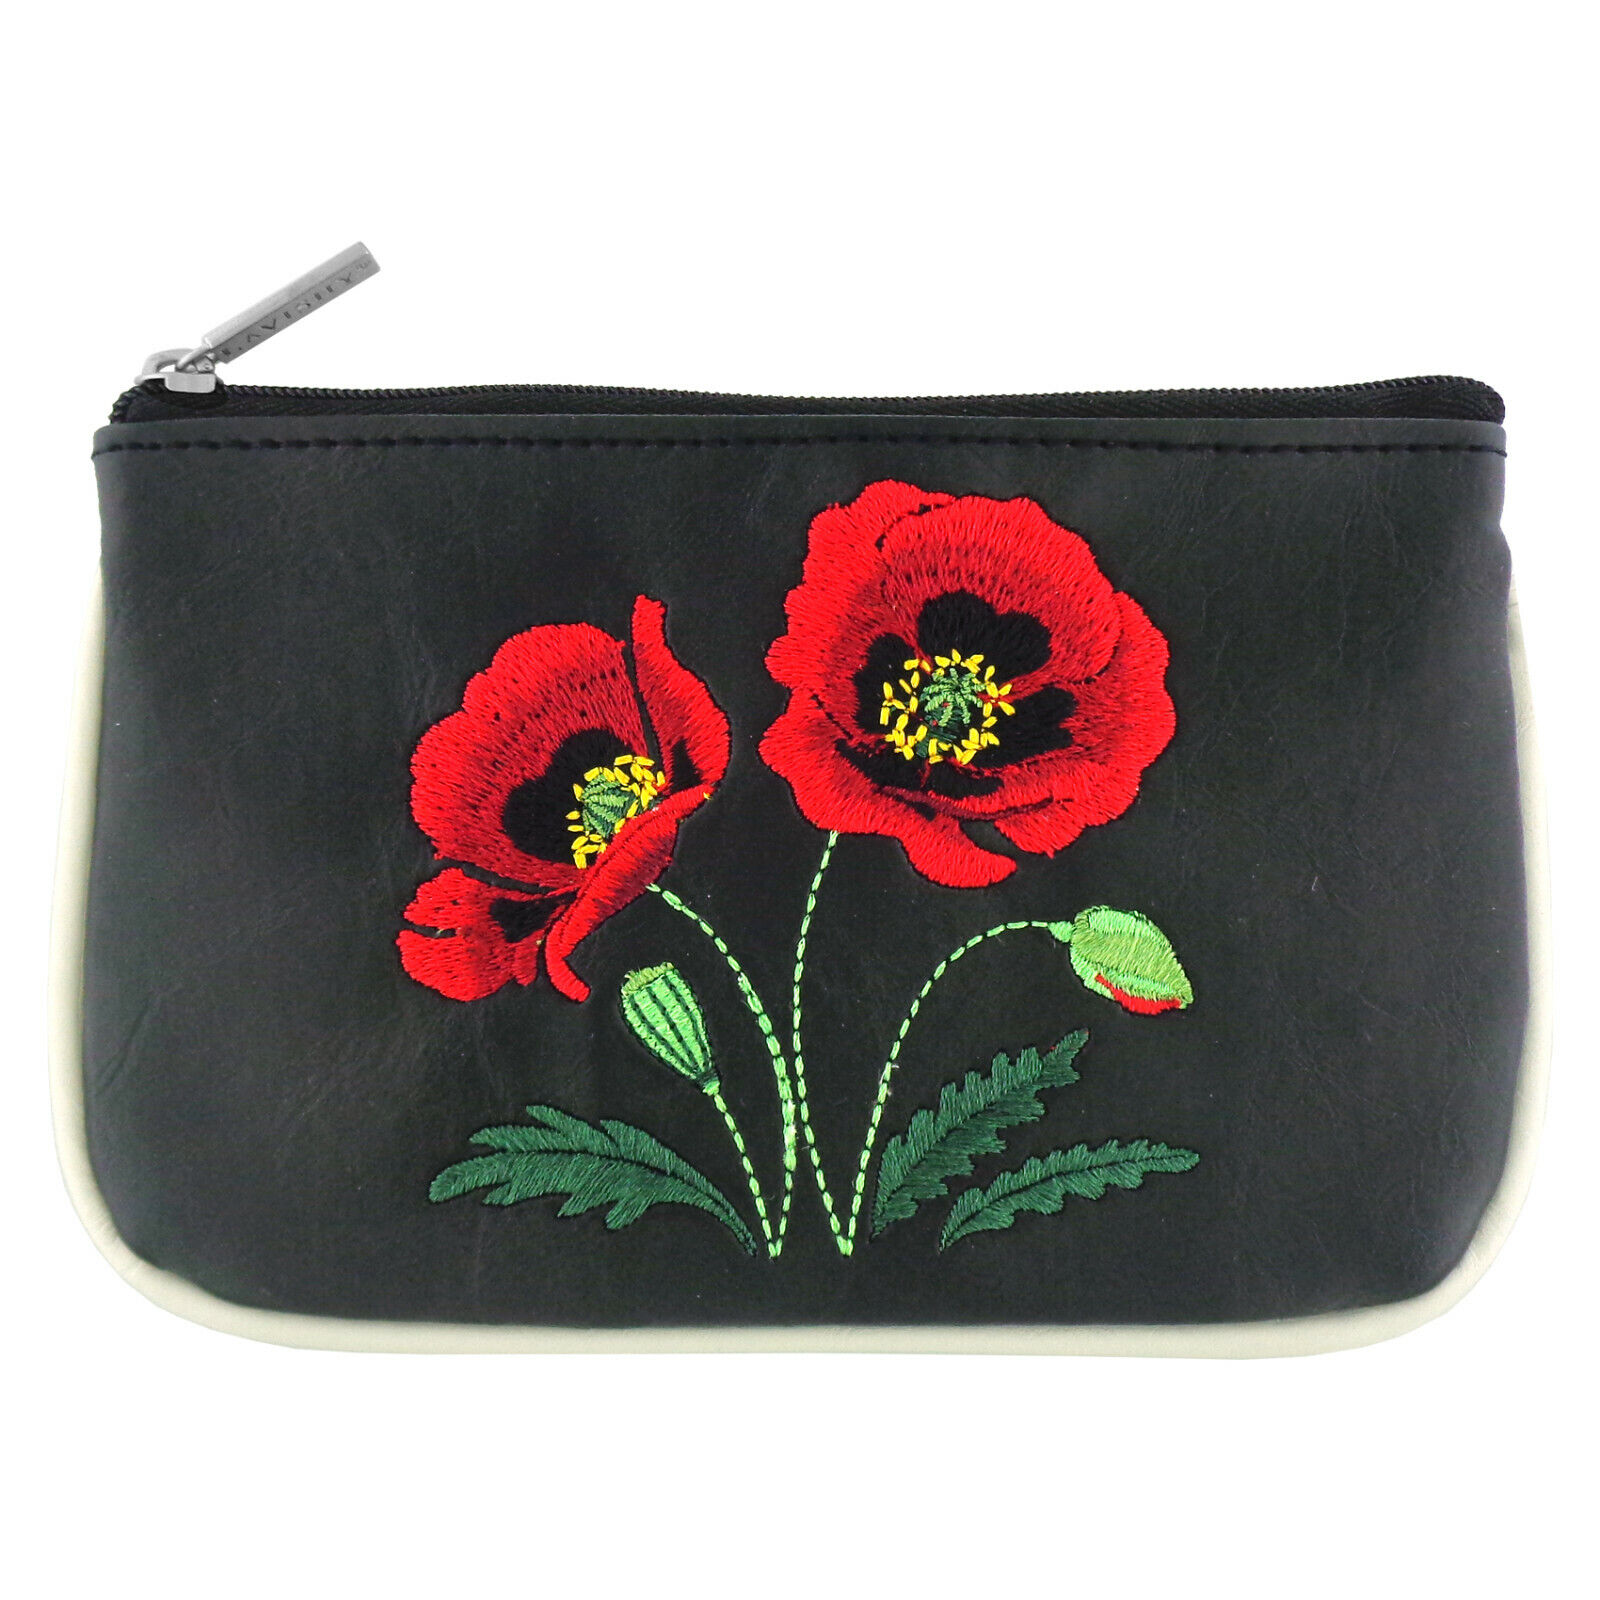 Lavishy Red Poppy Flower Embroidered Flat Pouch Coin Purse Wallet